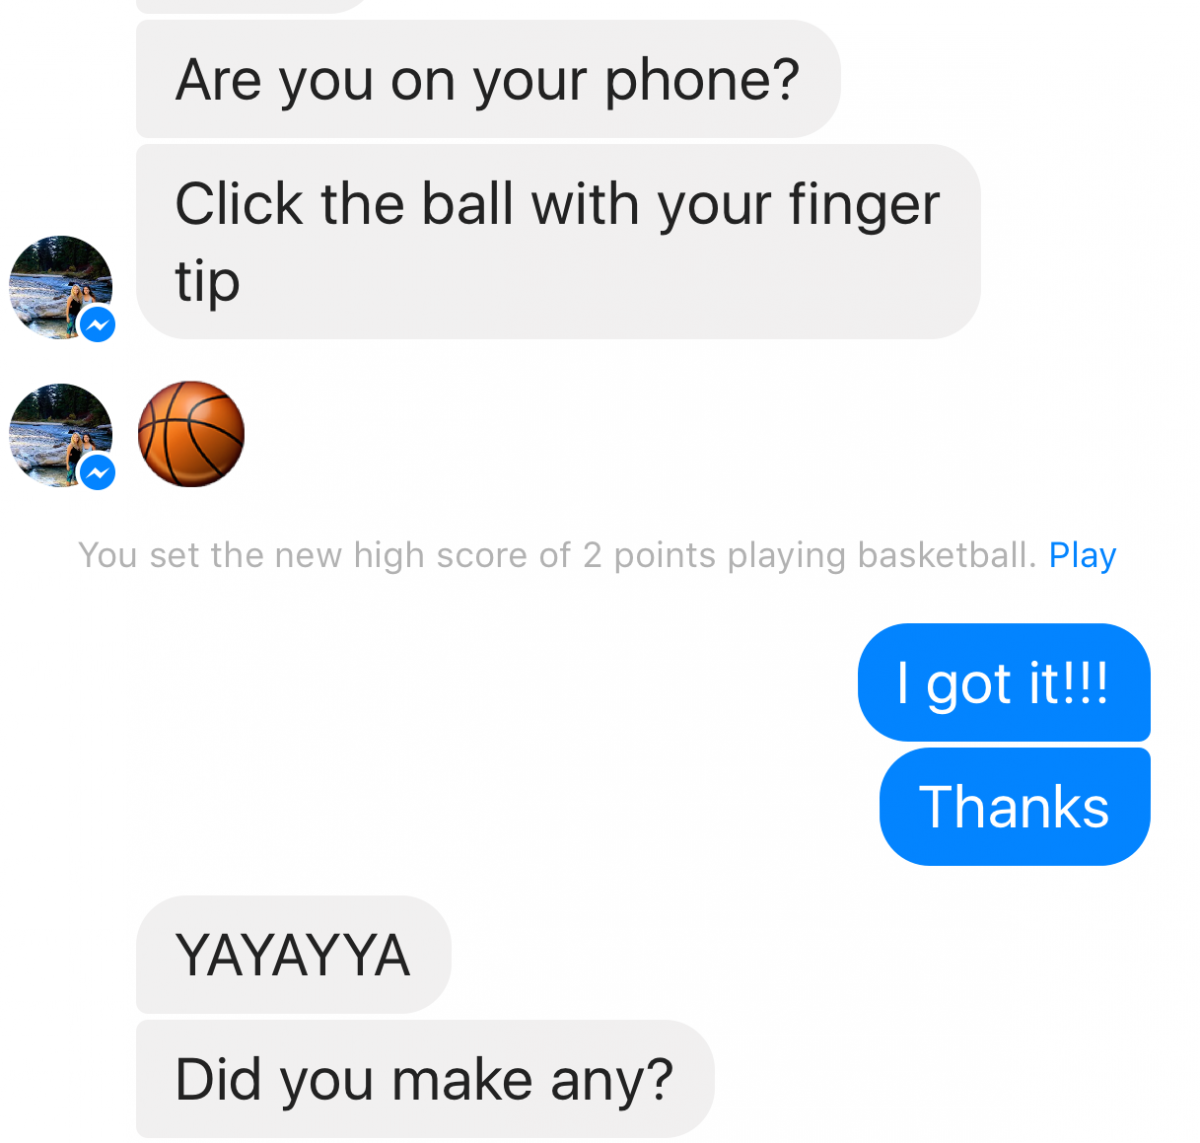 first-update-your-messenger-app-then-all-you-need-is-someone-in-a-chat-or-group-conversation-to-send-the-basketball-emoji